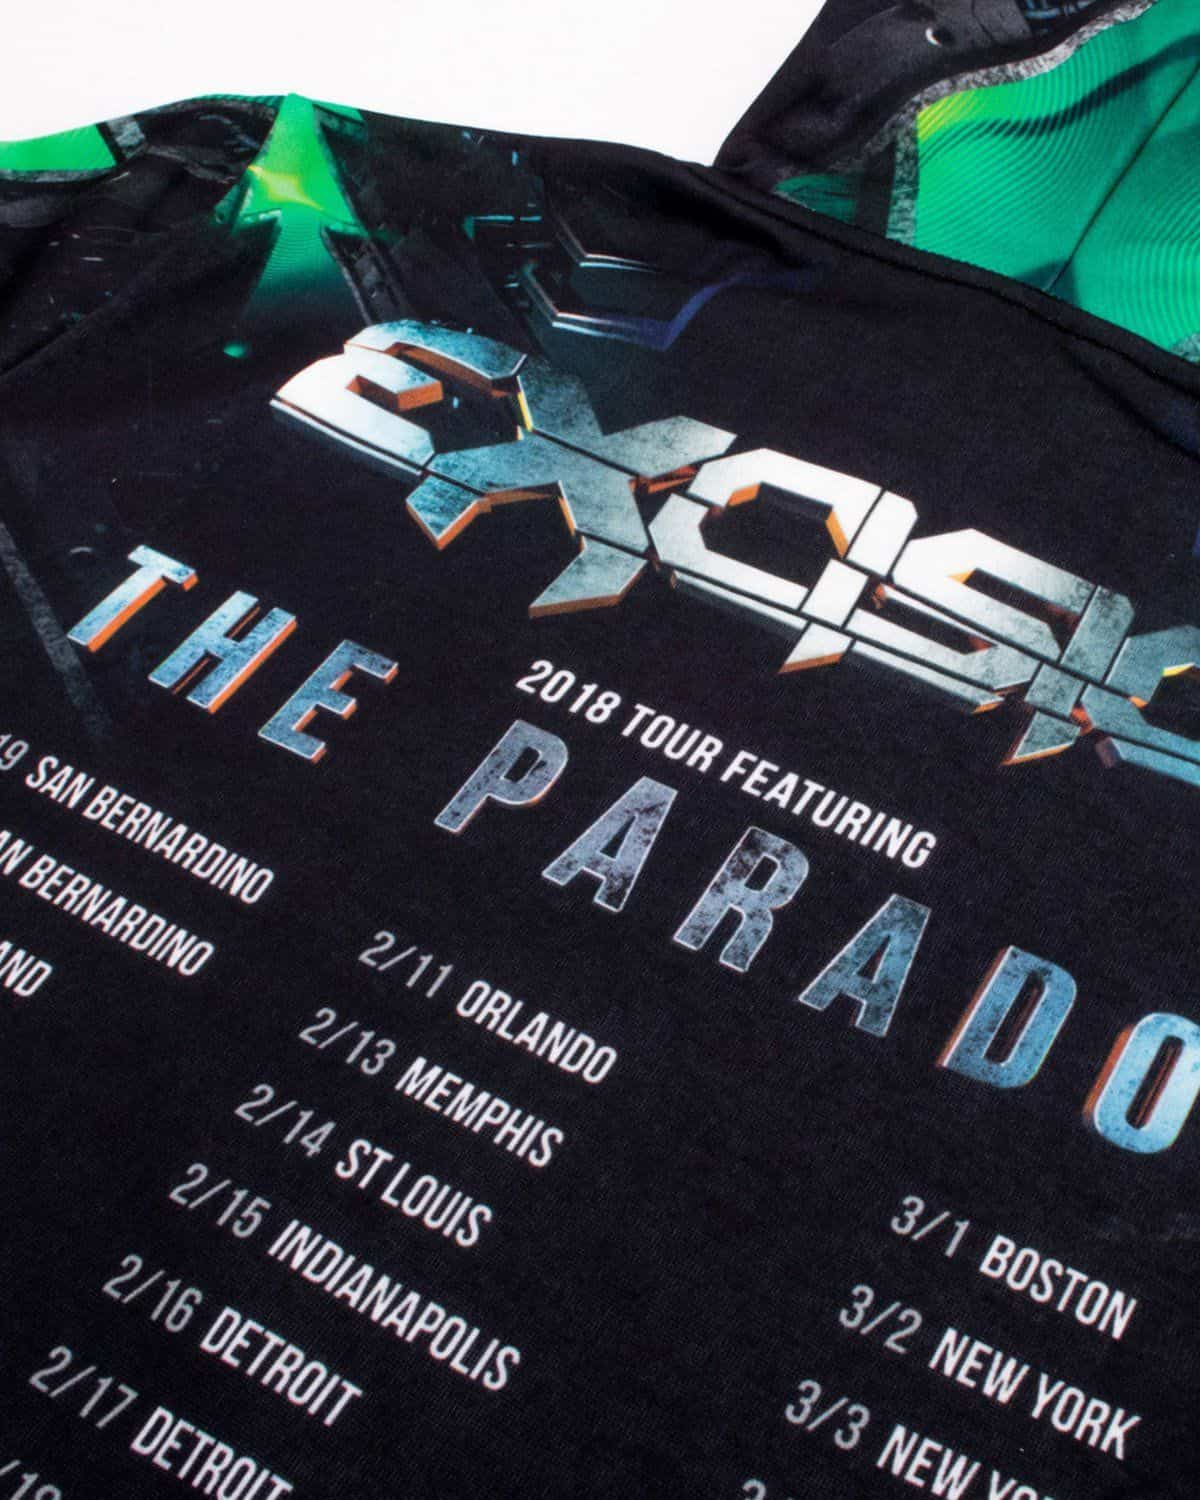 Excision 'The Paradox Tour 2018' Dye Sub Hoodie - Green/Black